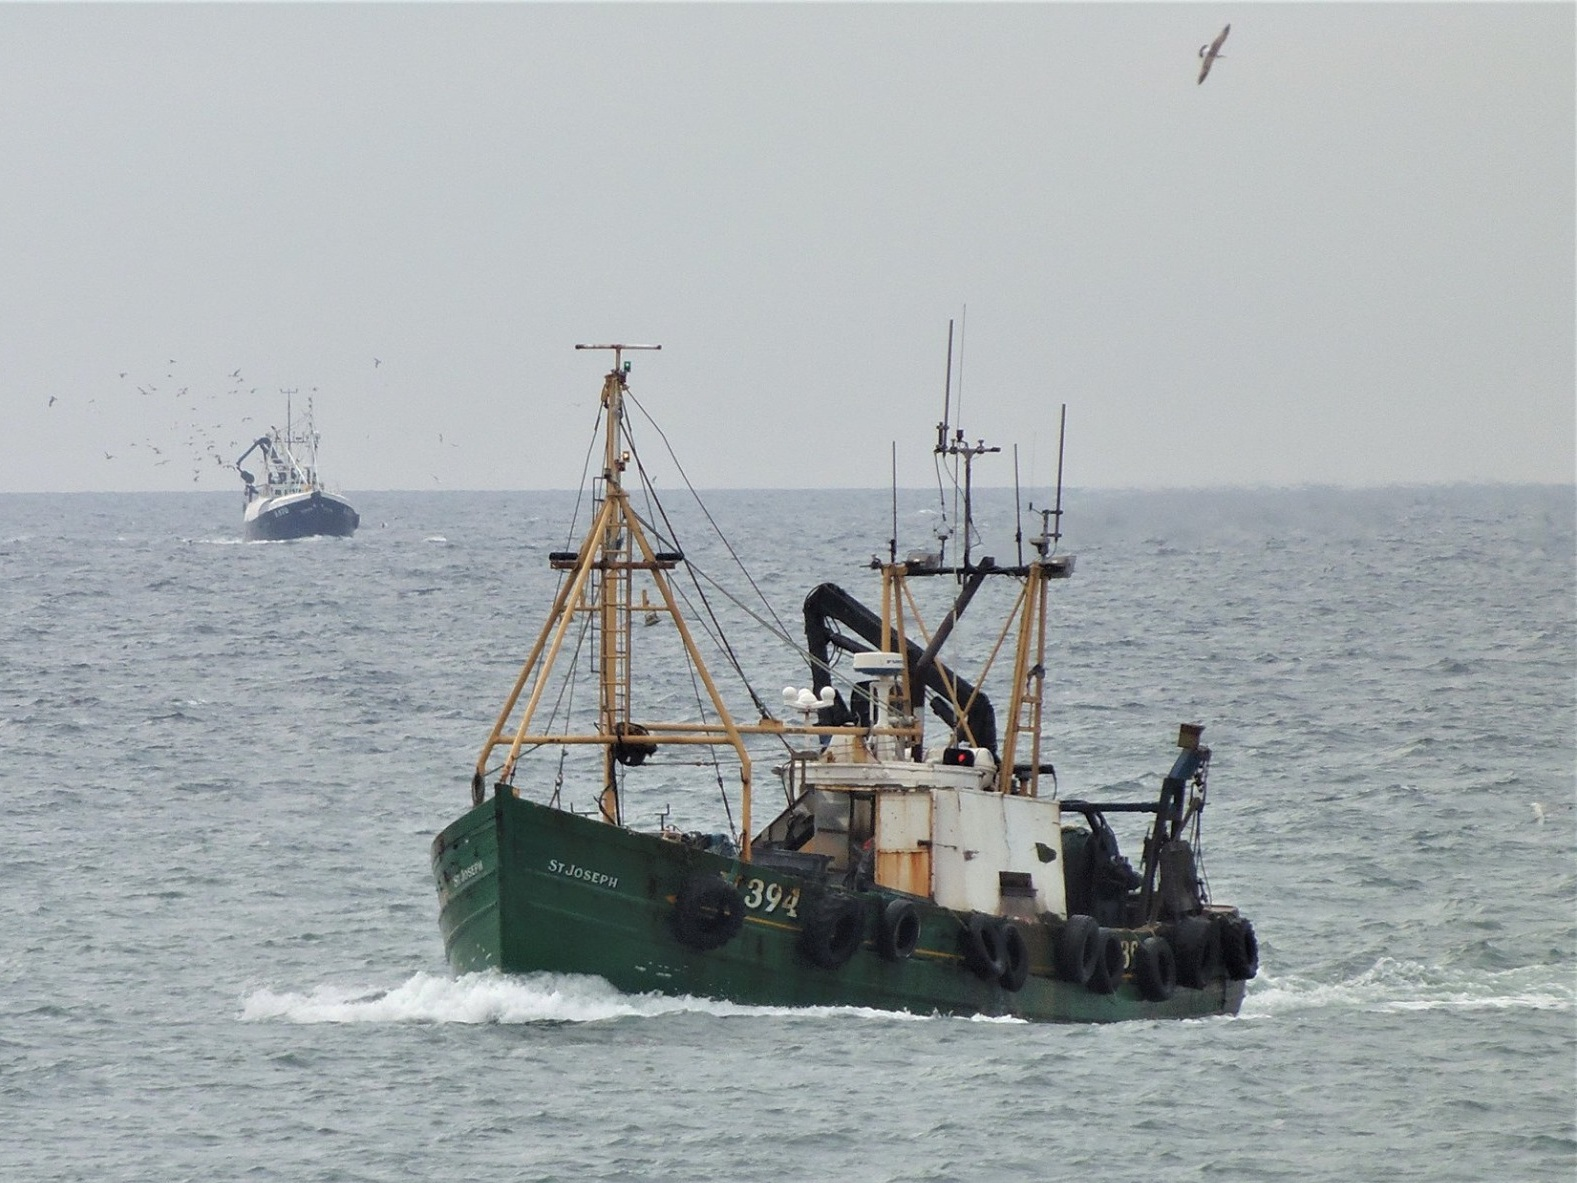 ST JOSEPH N394   Type: Wooden Hull Trawler  Size: 16.49m  Built: 1967; Anstruther